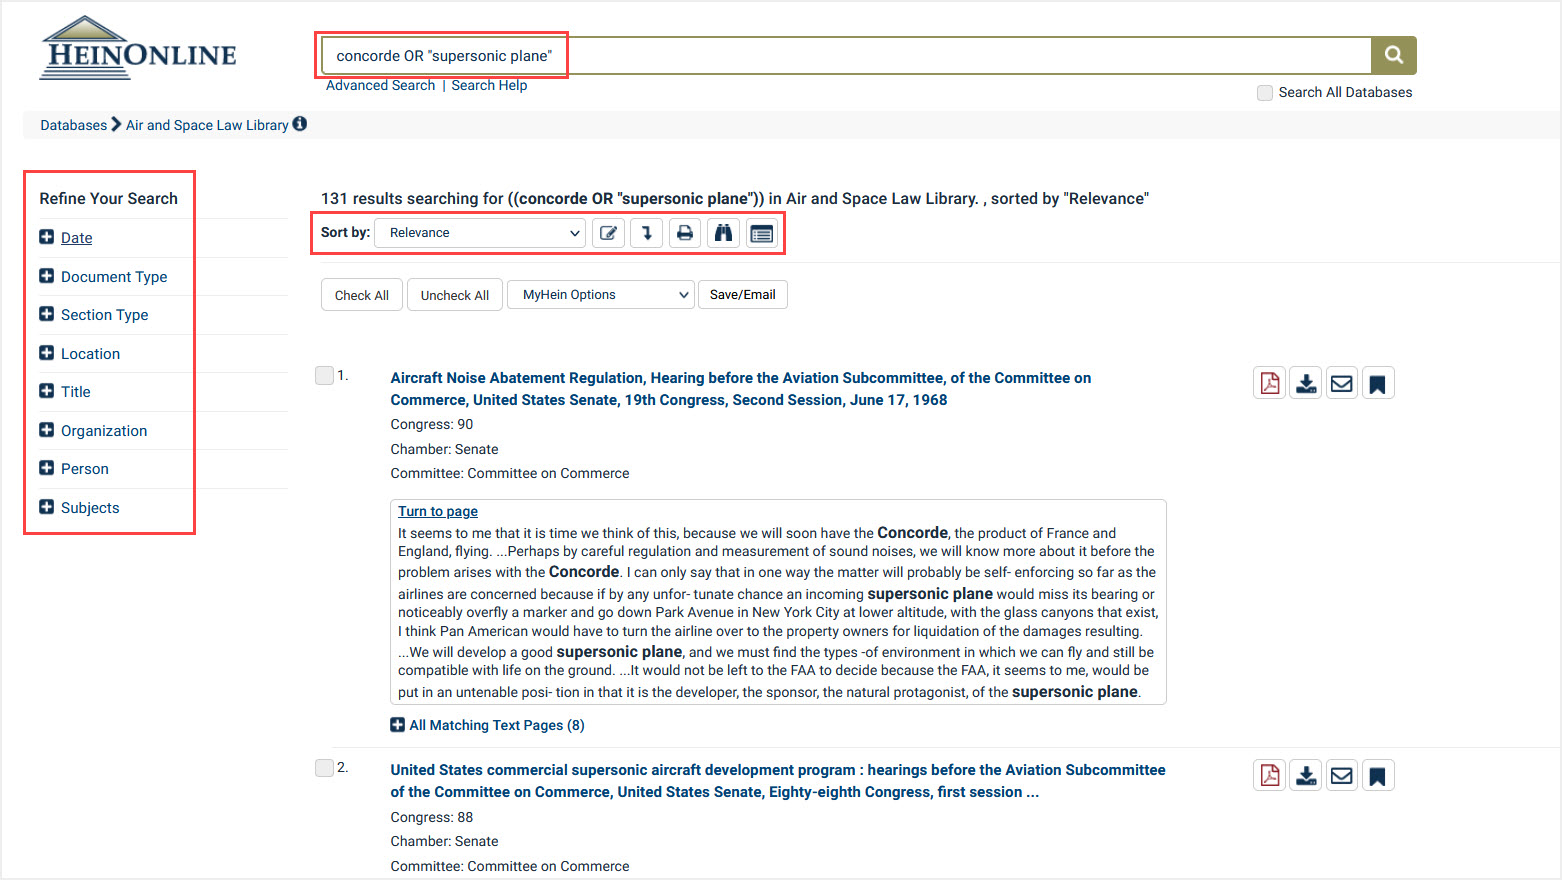 View of advanced search results